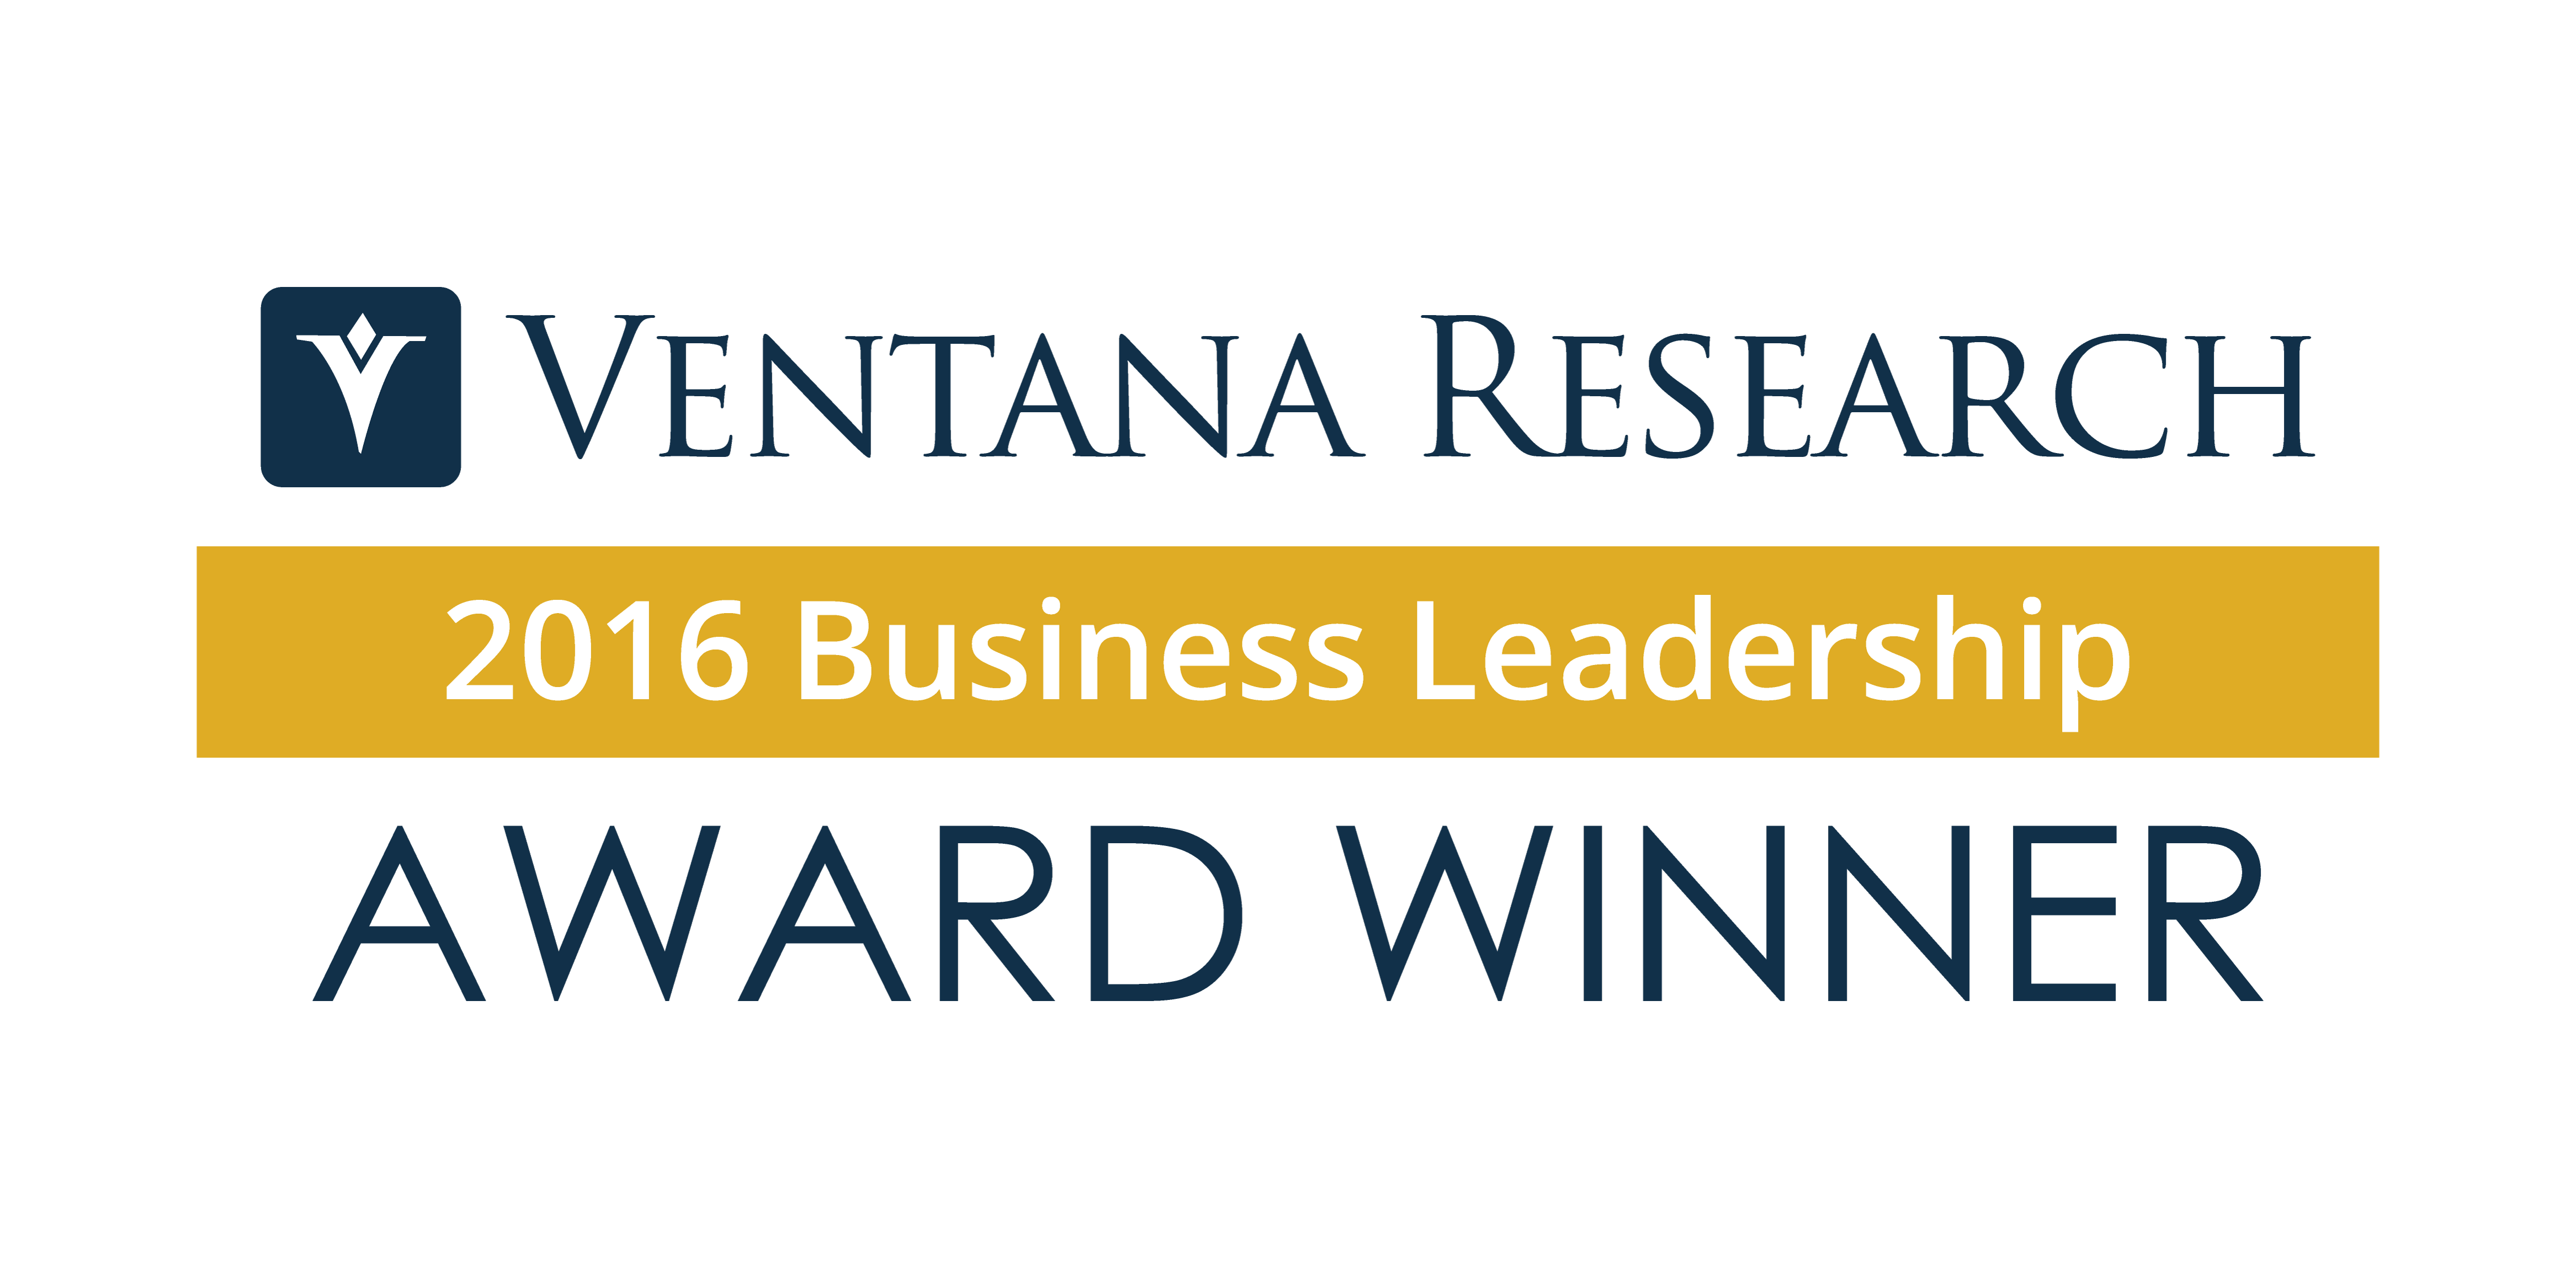 VentanaResearch_BusinessLeadershipAwards_Winner-2016.png